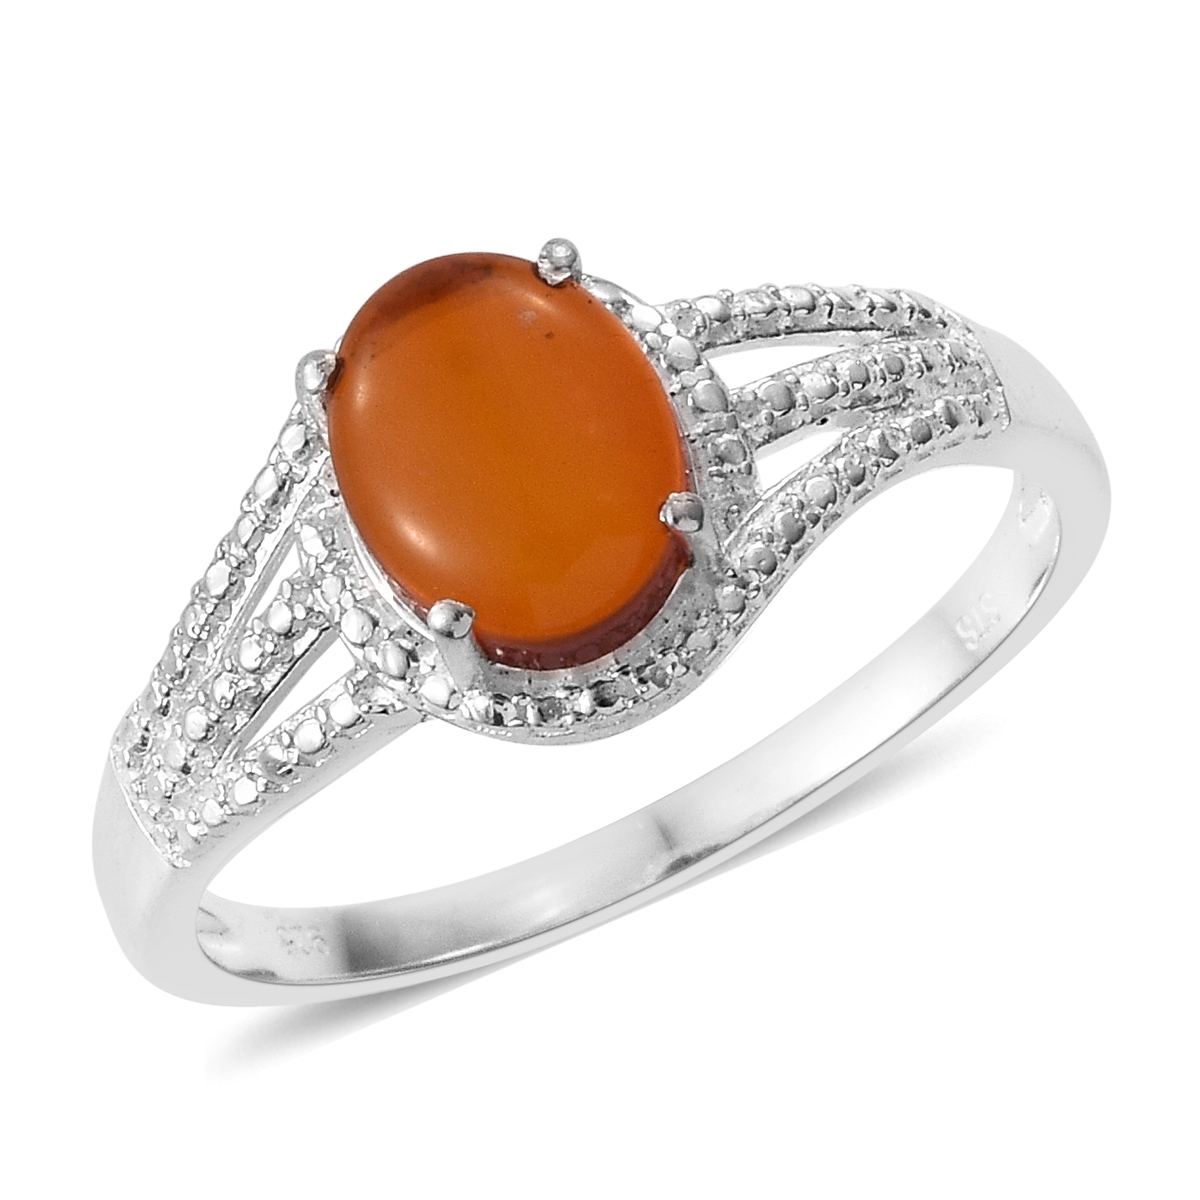 720735cb3 Baltic Amber Sterling Silver Ring (Size 9.0) | Solitaire | Rings | Jewelry  | online-store | Shop LC